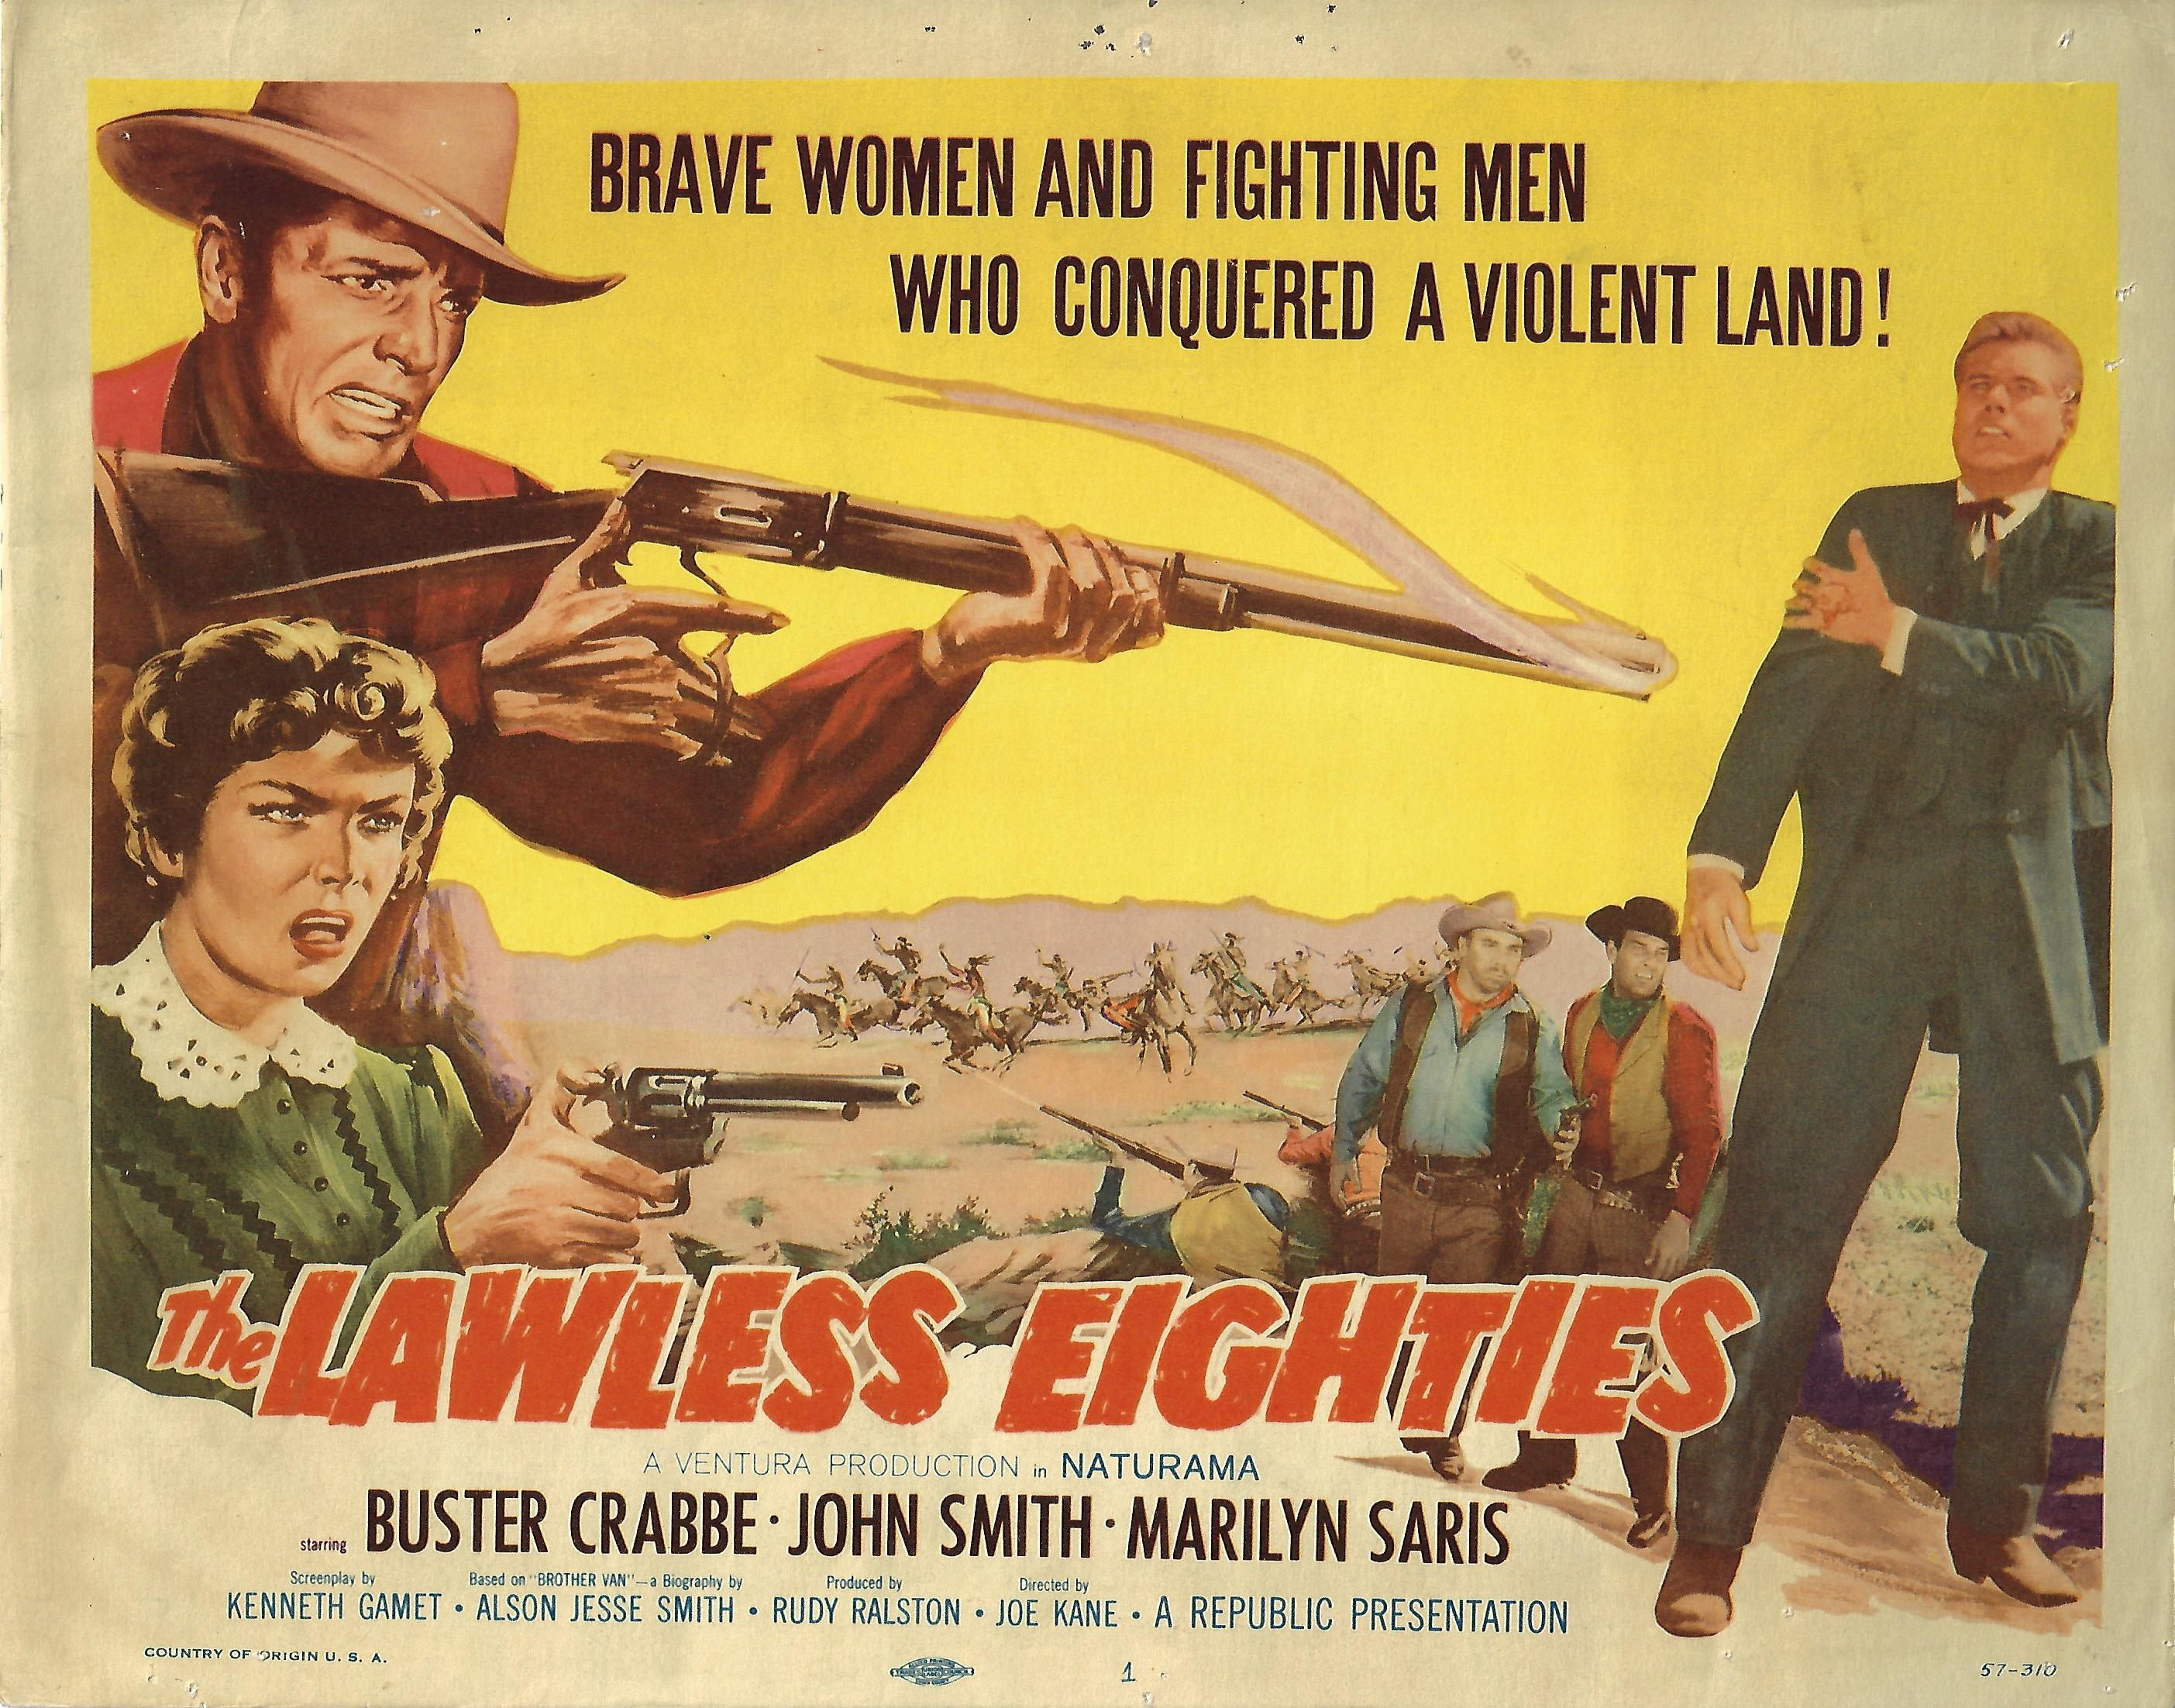 Lawless Eighties, Original Title Card , 1957, 11x14